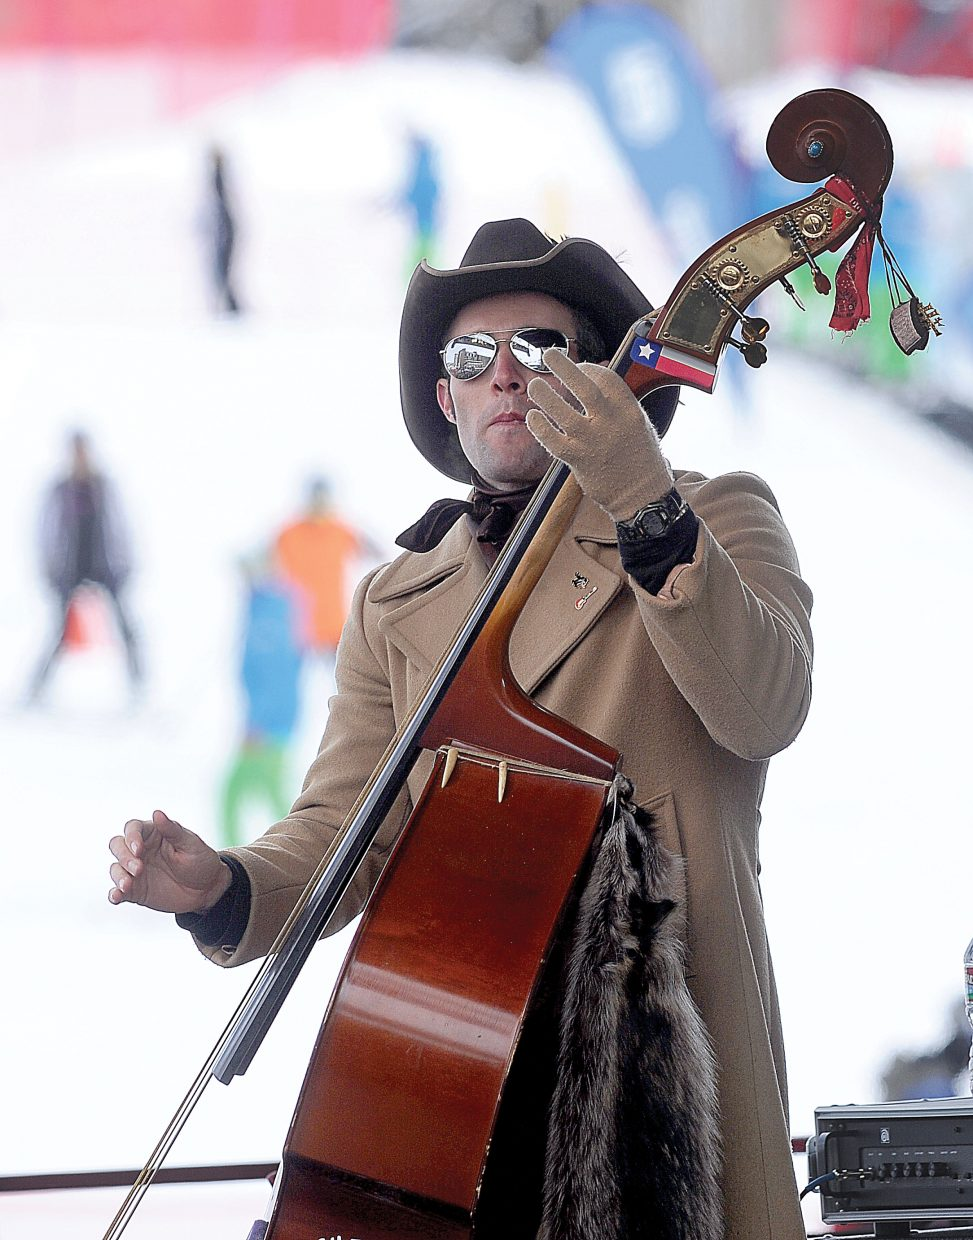 Bass player Colton James, of the Dirty River Boys, entertains a large crowd at the base of Steamboat Ski Area on Tuesday afternoon.